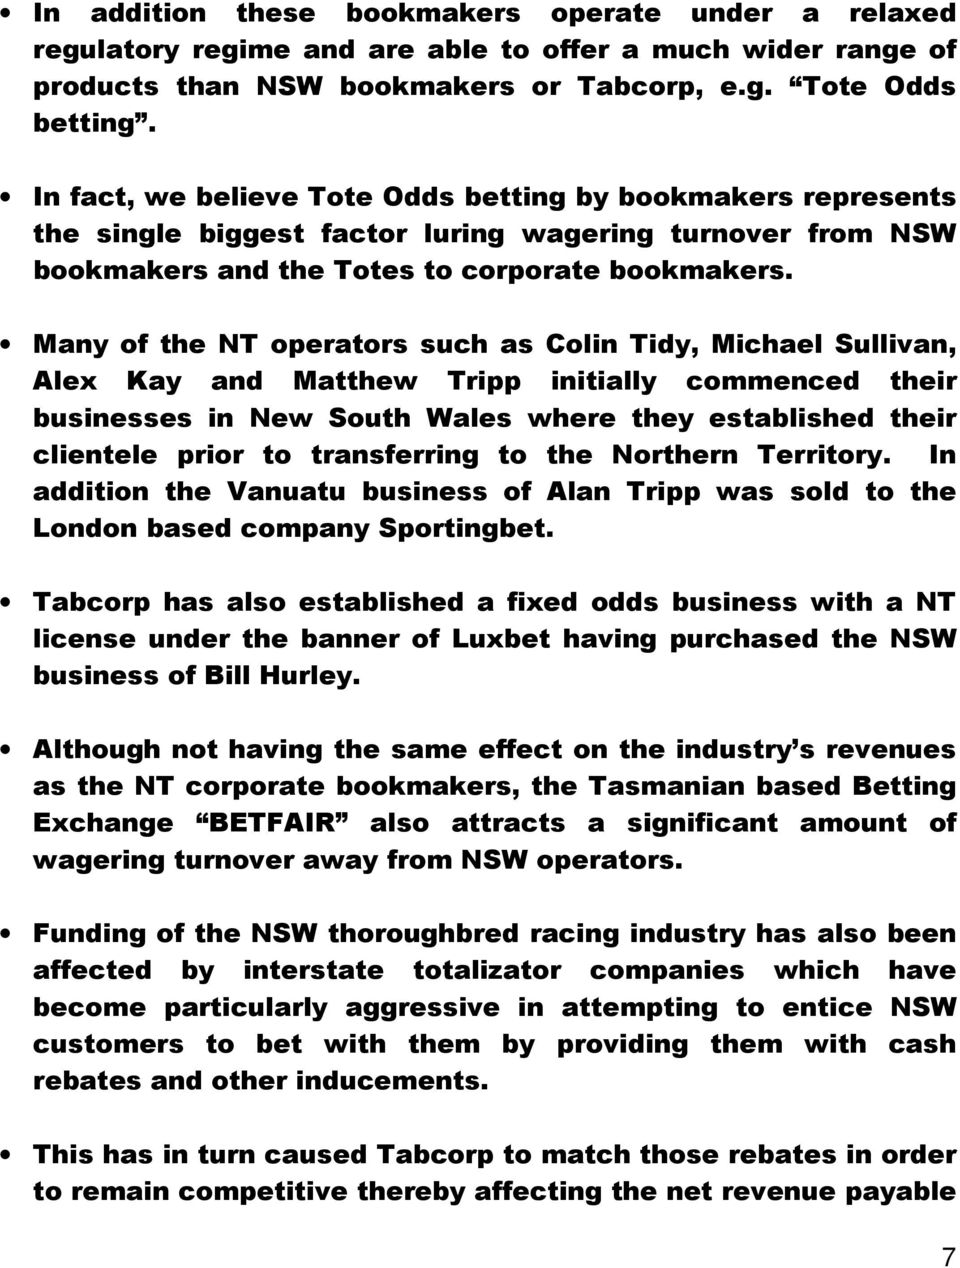 Many of the NT operators such as Colin Tidy, Michael Sullivan, Alex Kay and Matthew Tripp initially commenced their businesses in New South Wales where they established their clientele prior to